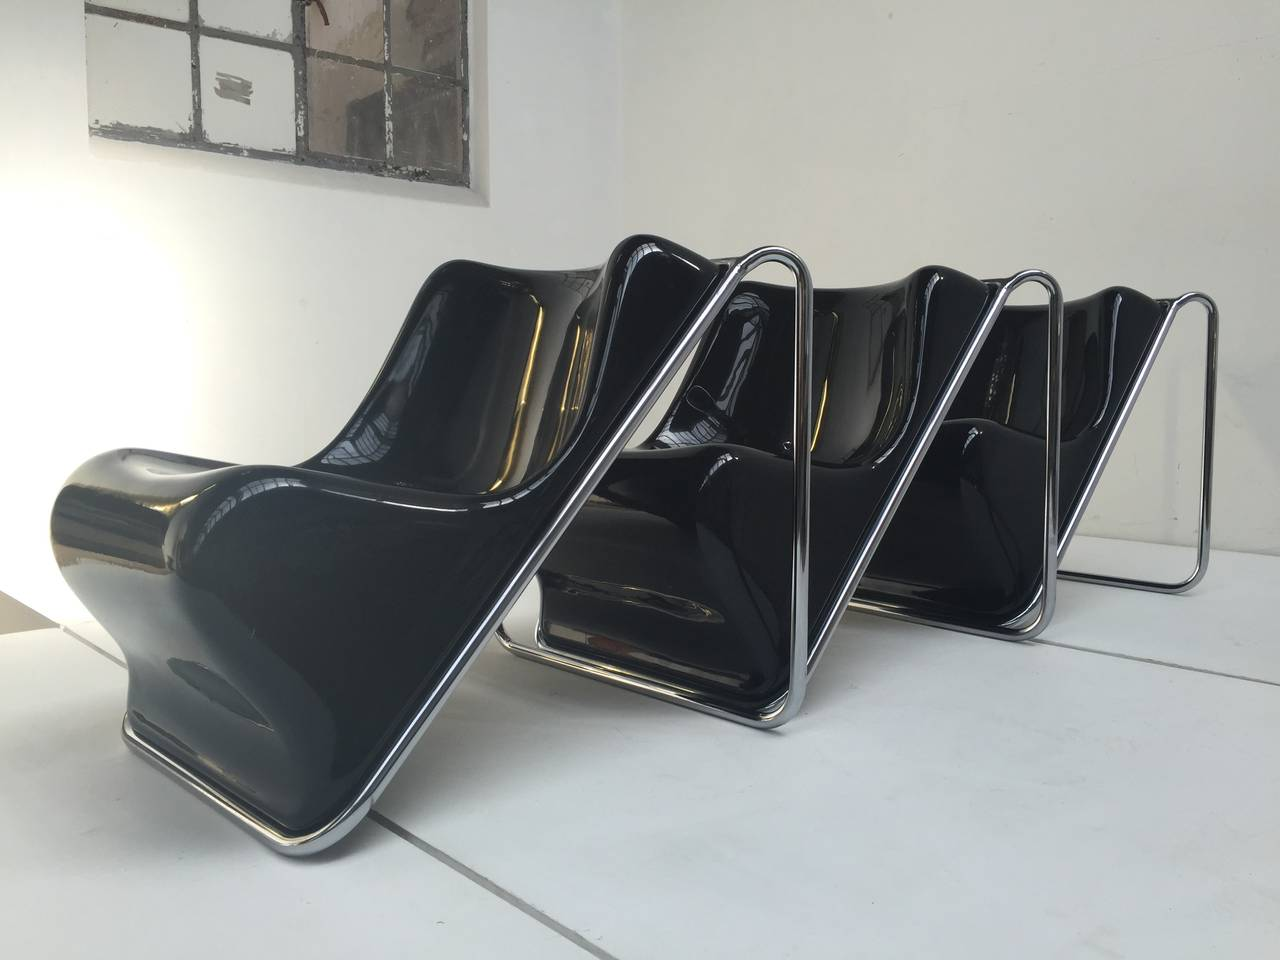 P110 Lounge Chairs by Rosselli, Partner of Gio Ponti, Exhibited at MoMA, NY 8